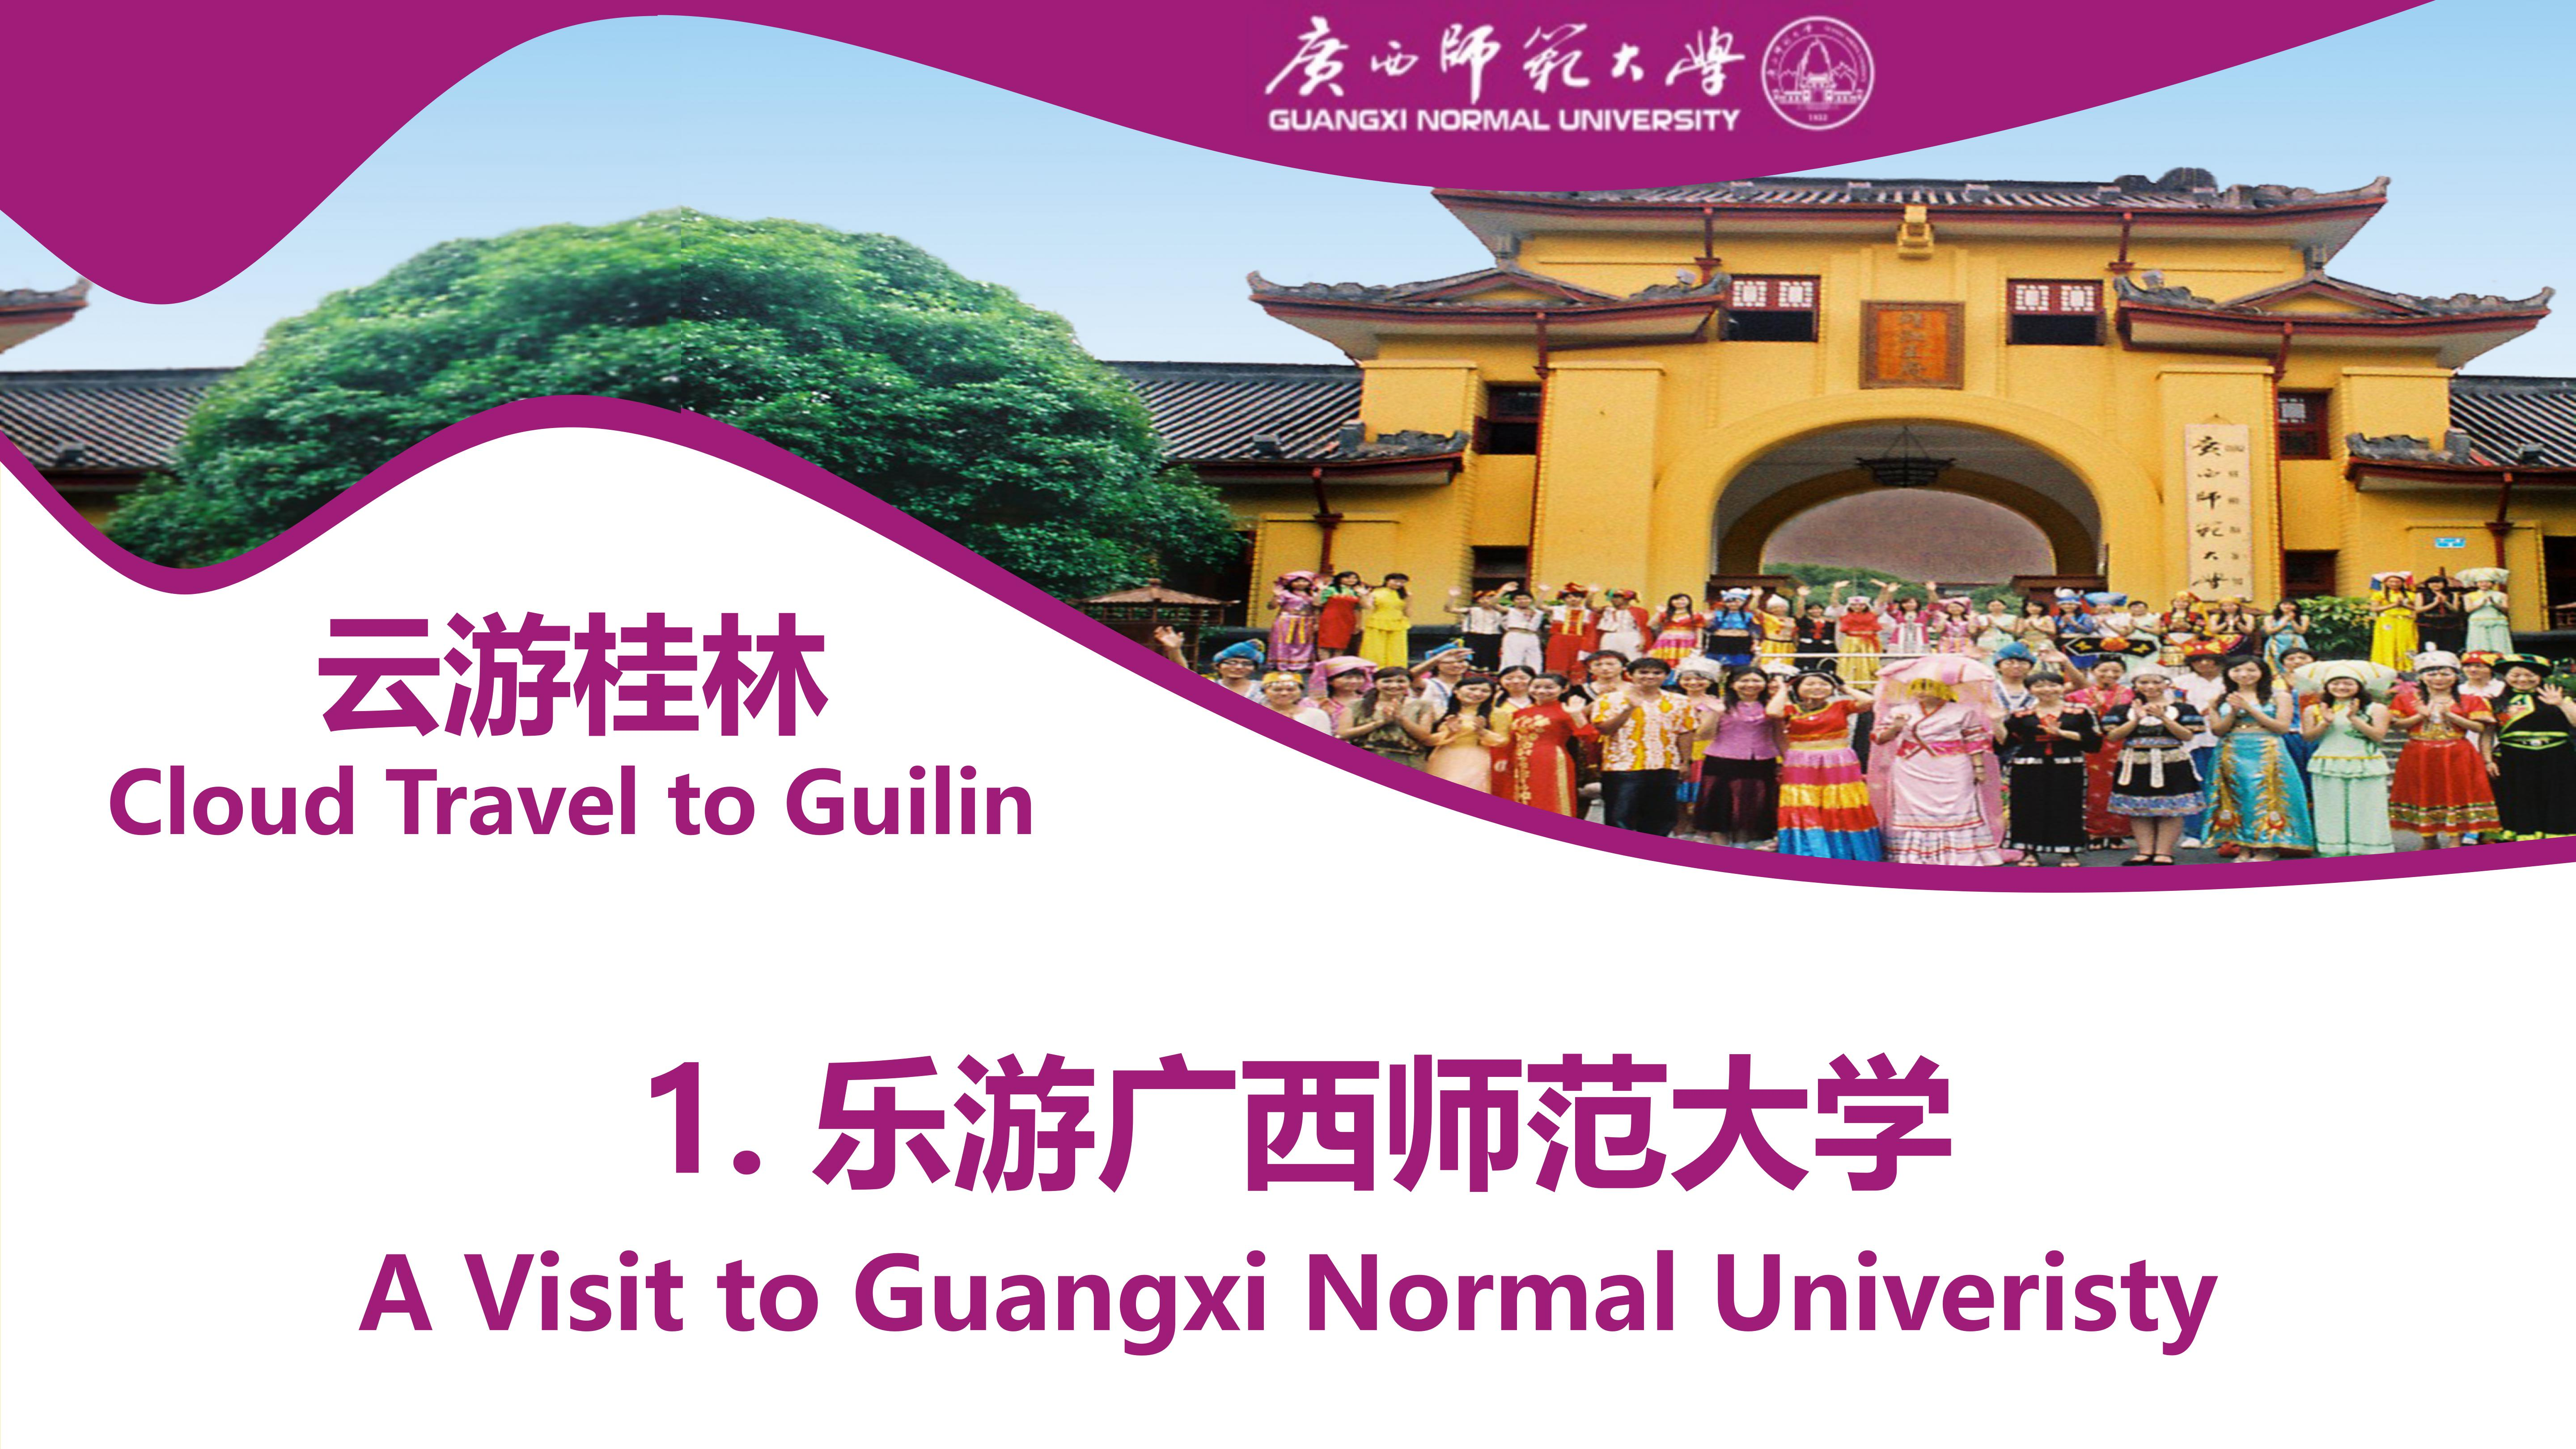 A Visit to Guangxi Normal Univeristy